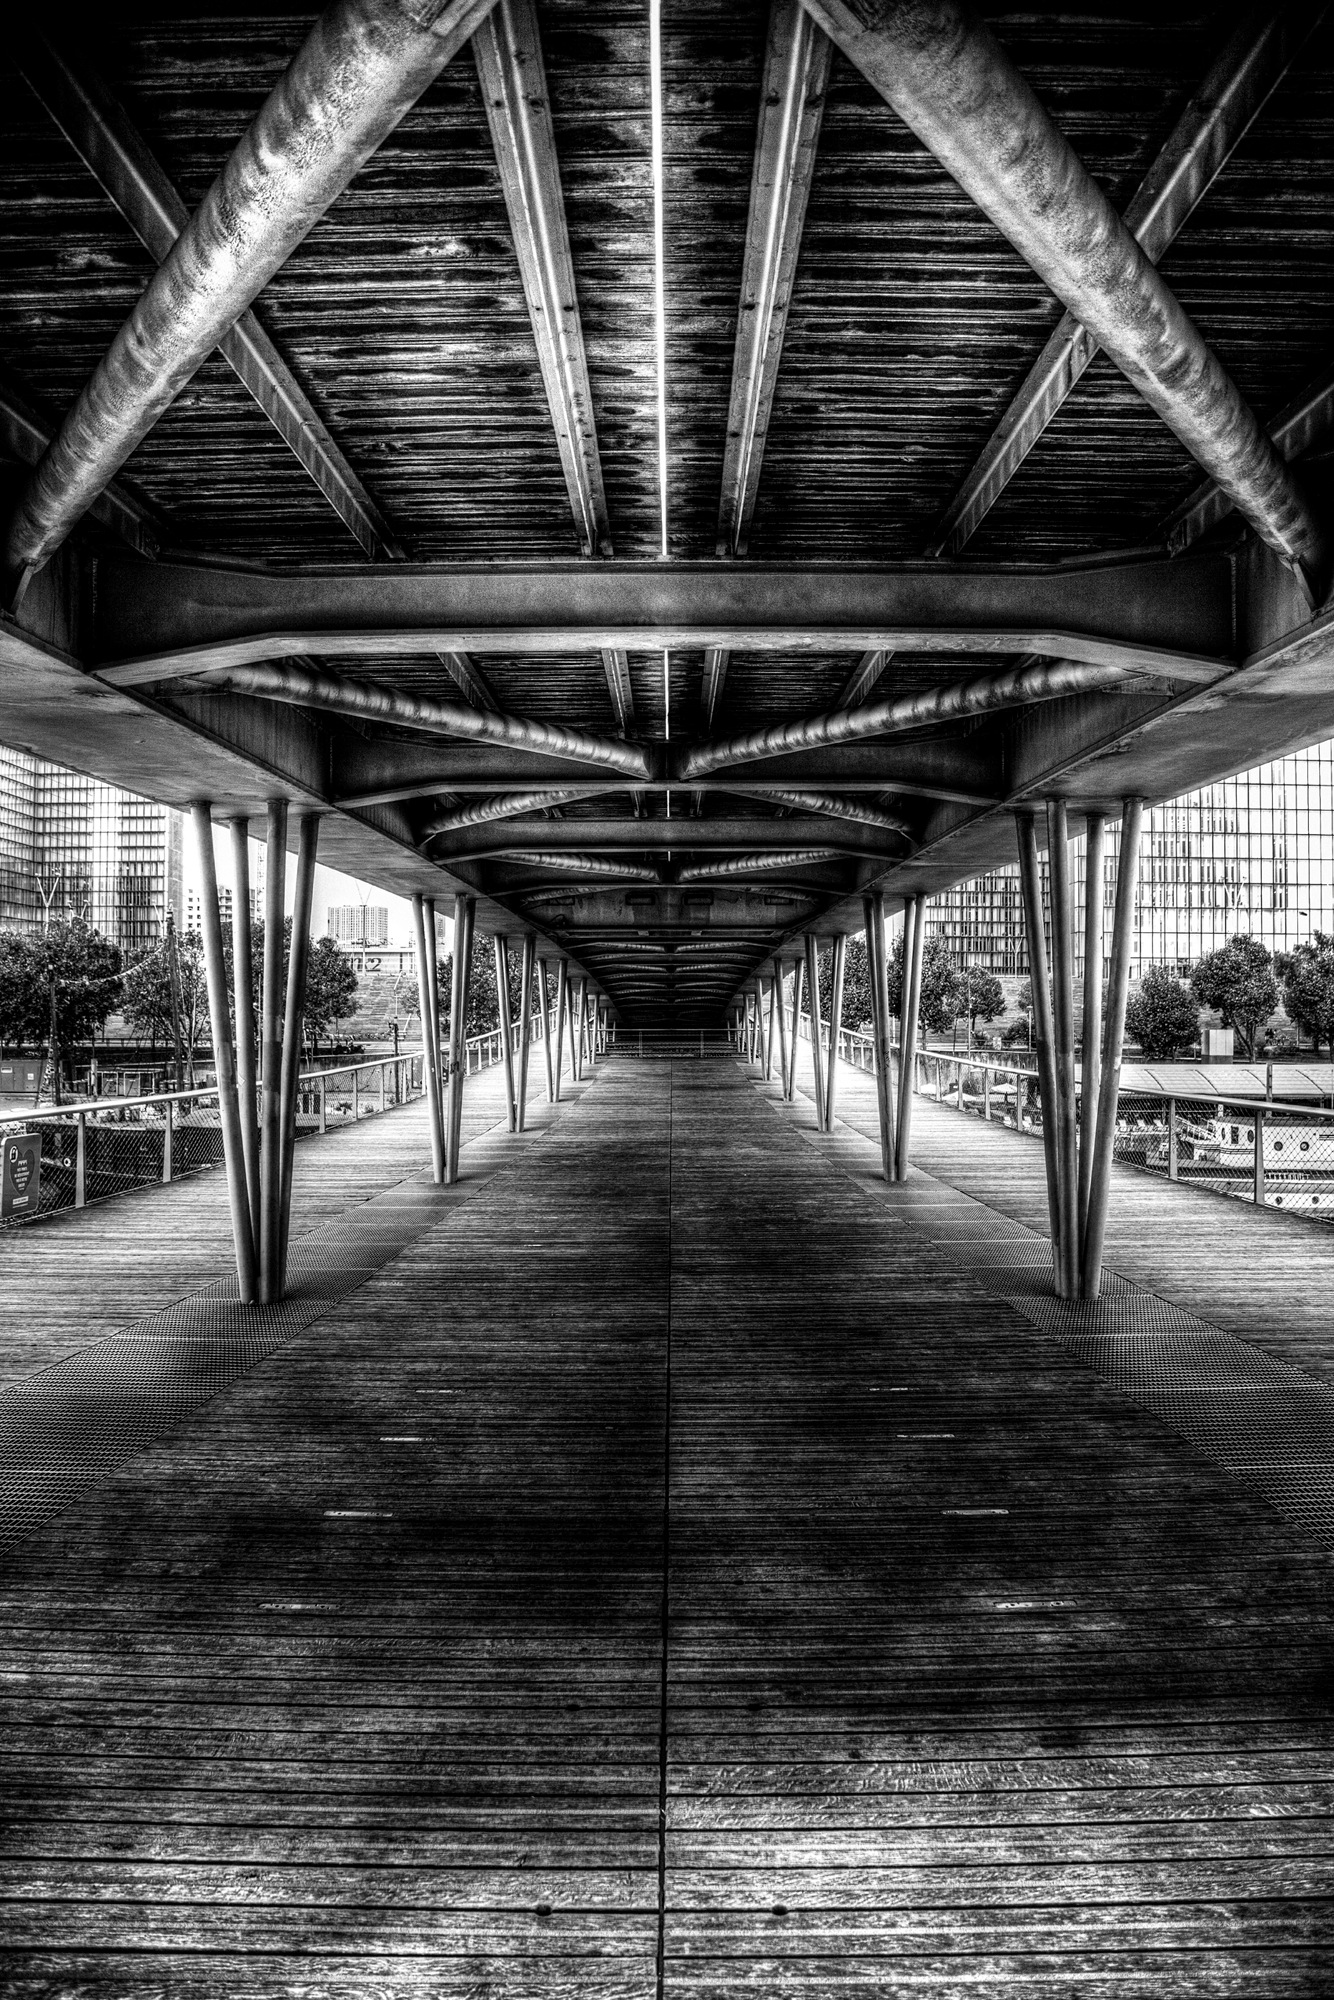 Under The Bridge by ALANIG